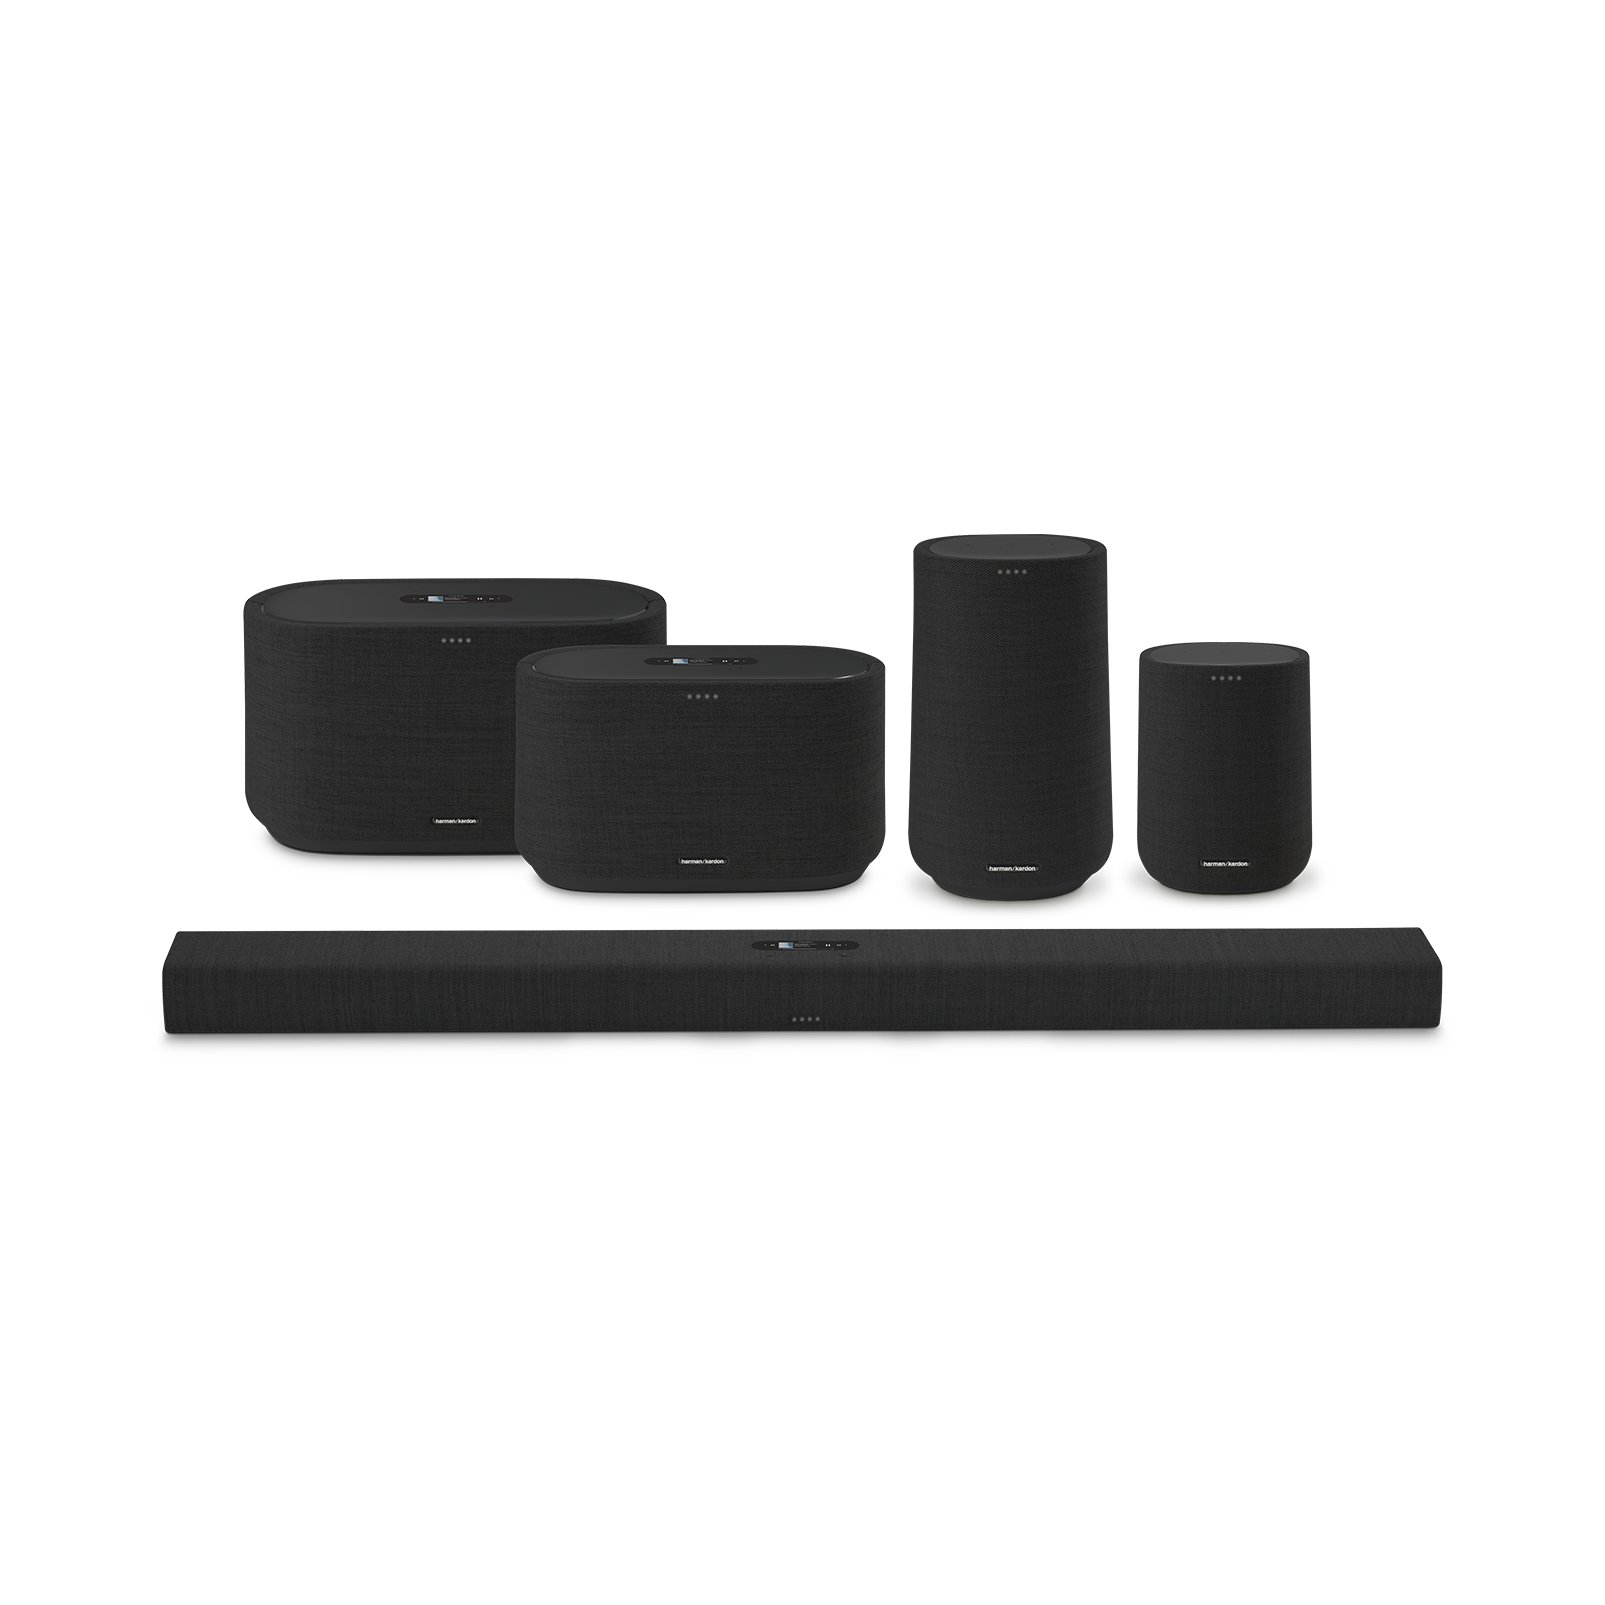 Harman Kardon Citation 100 - Black - The smallest, smartest home speaker with impactful sound - Detailshot 5